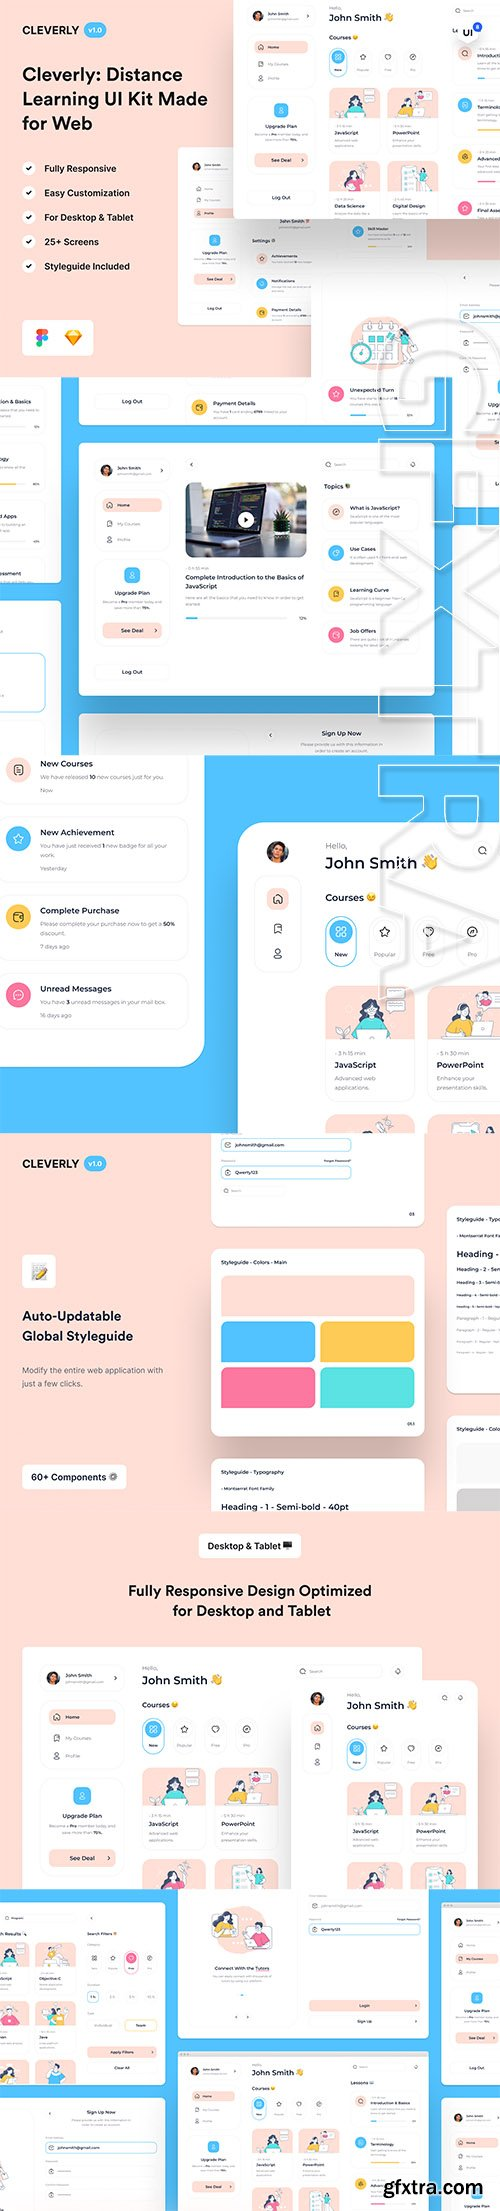 Cleverly: Distance Learning Web UI Kit